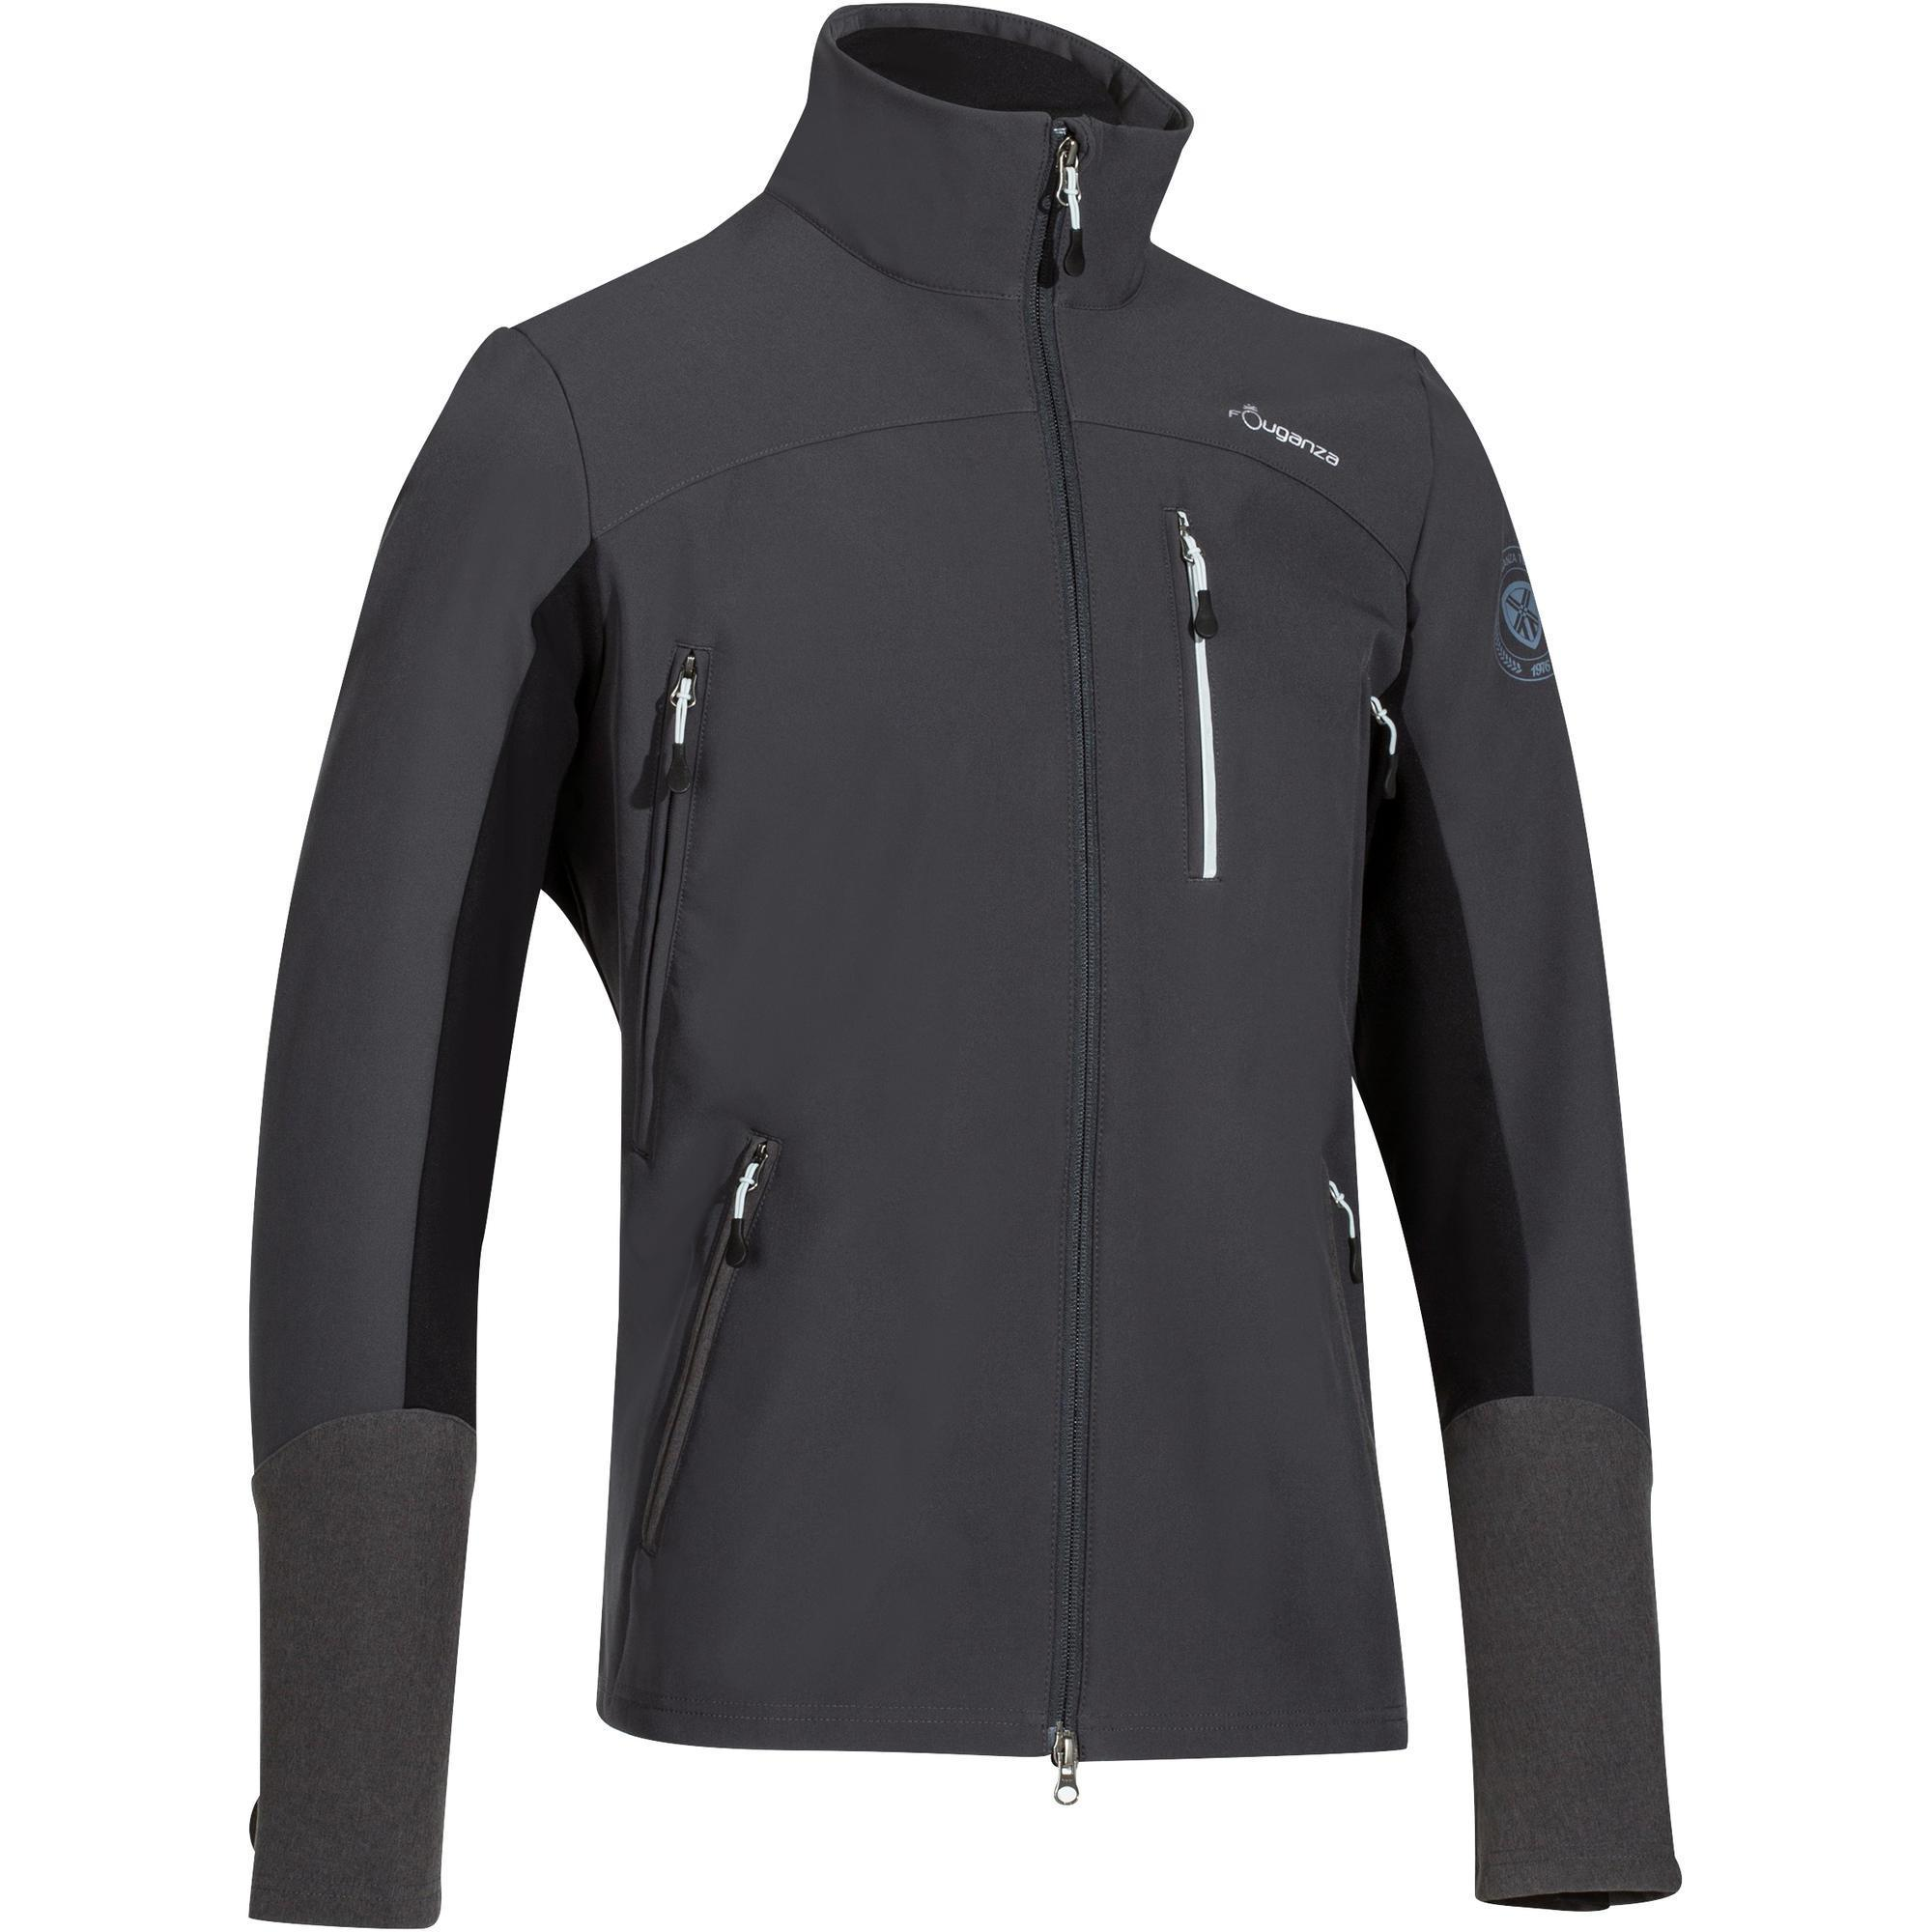 Fouganza Jas ruitersport heren Softshell 700 donkergrijs